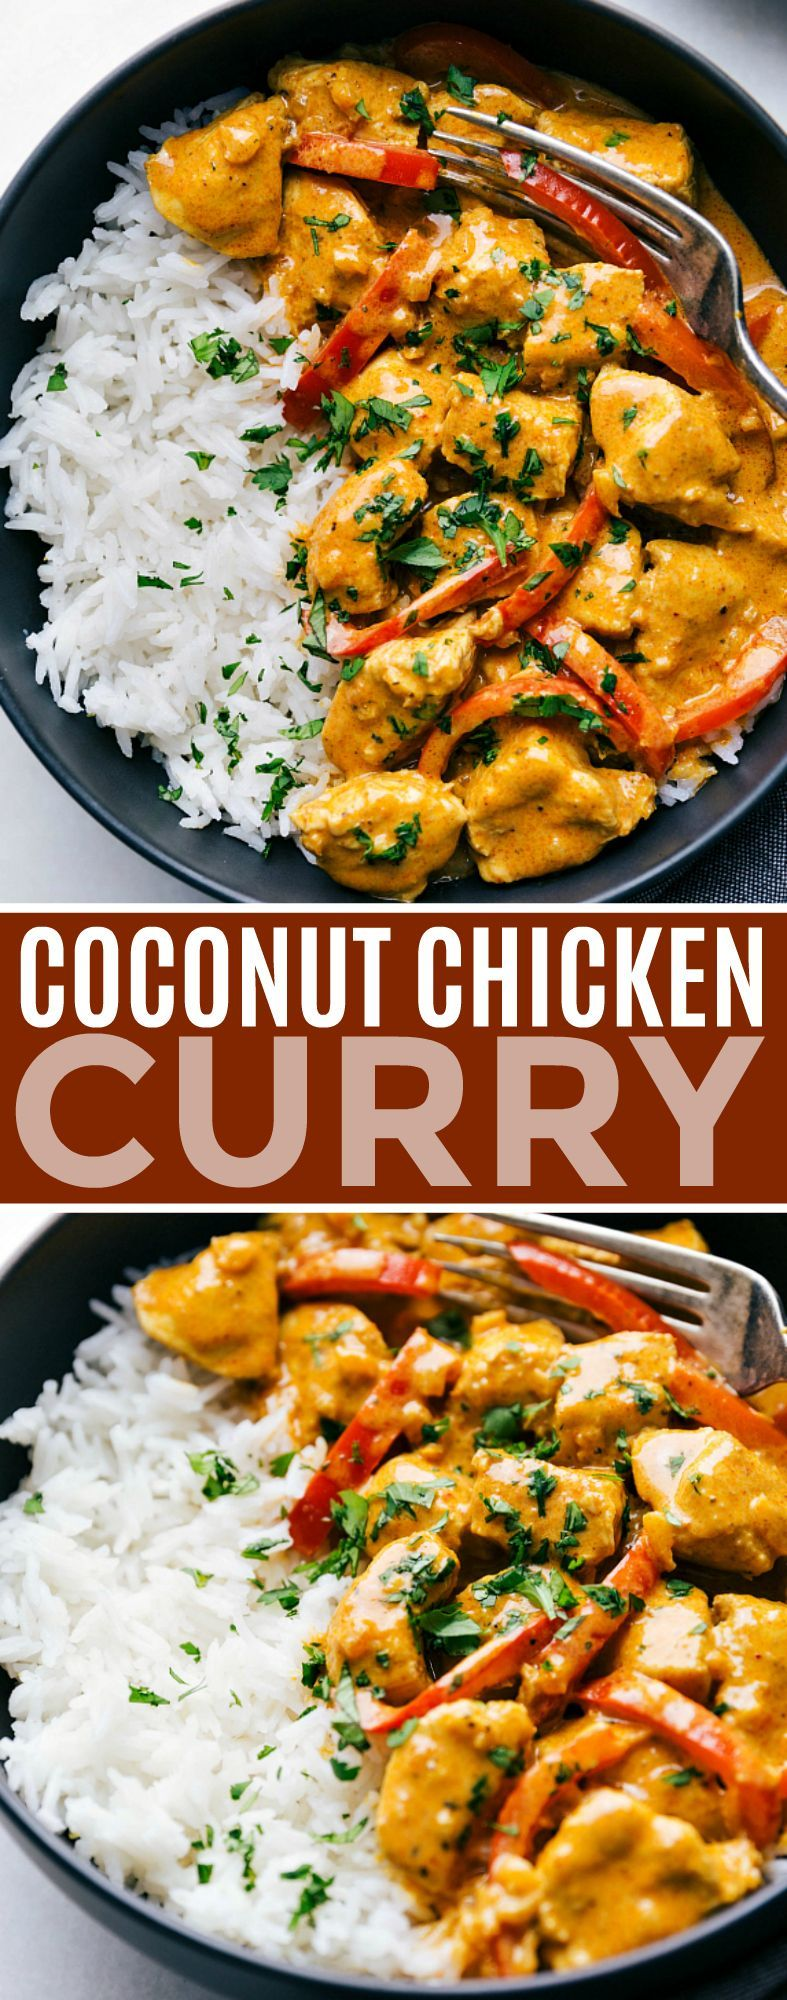 Coconut Chicken Curry #chinesemeals